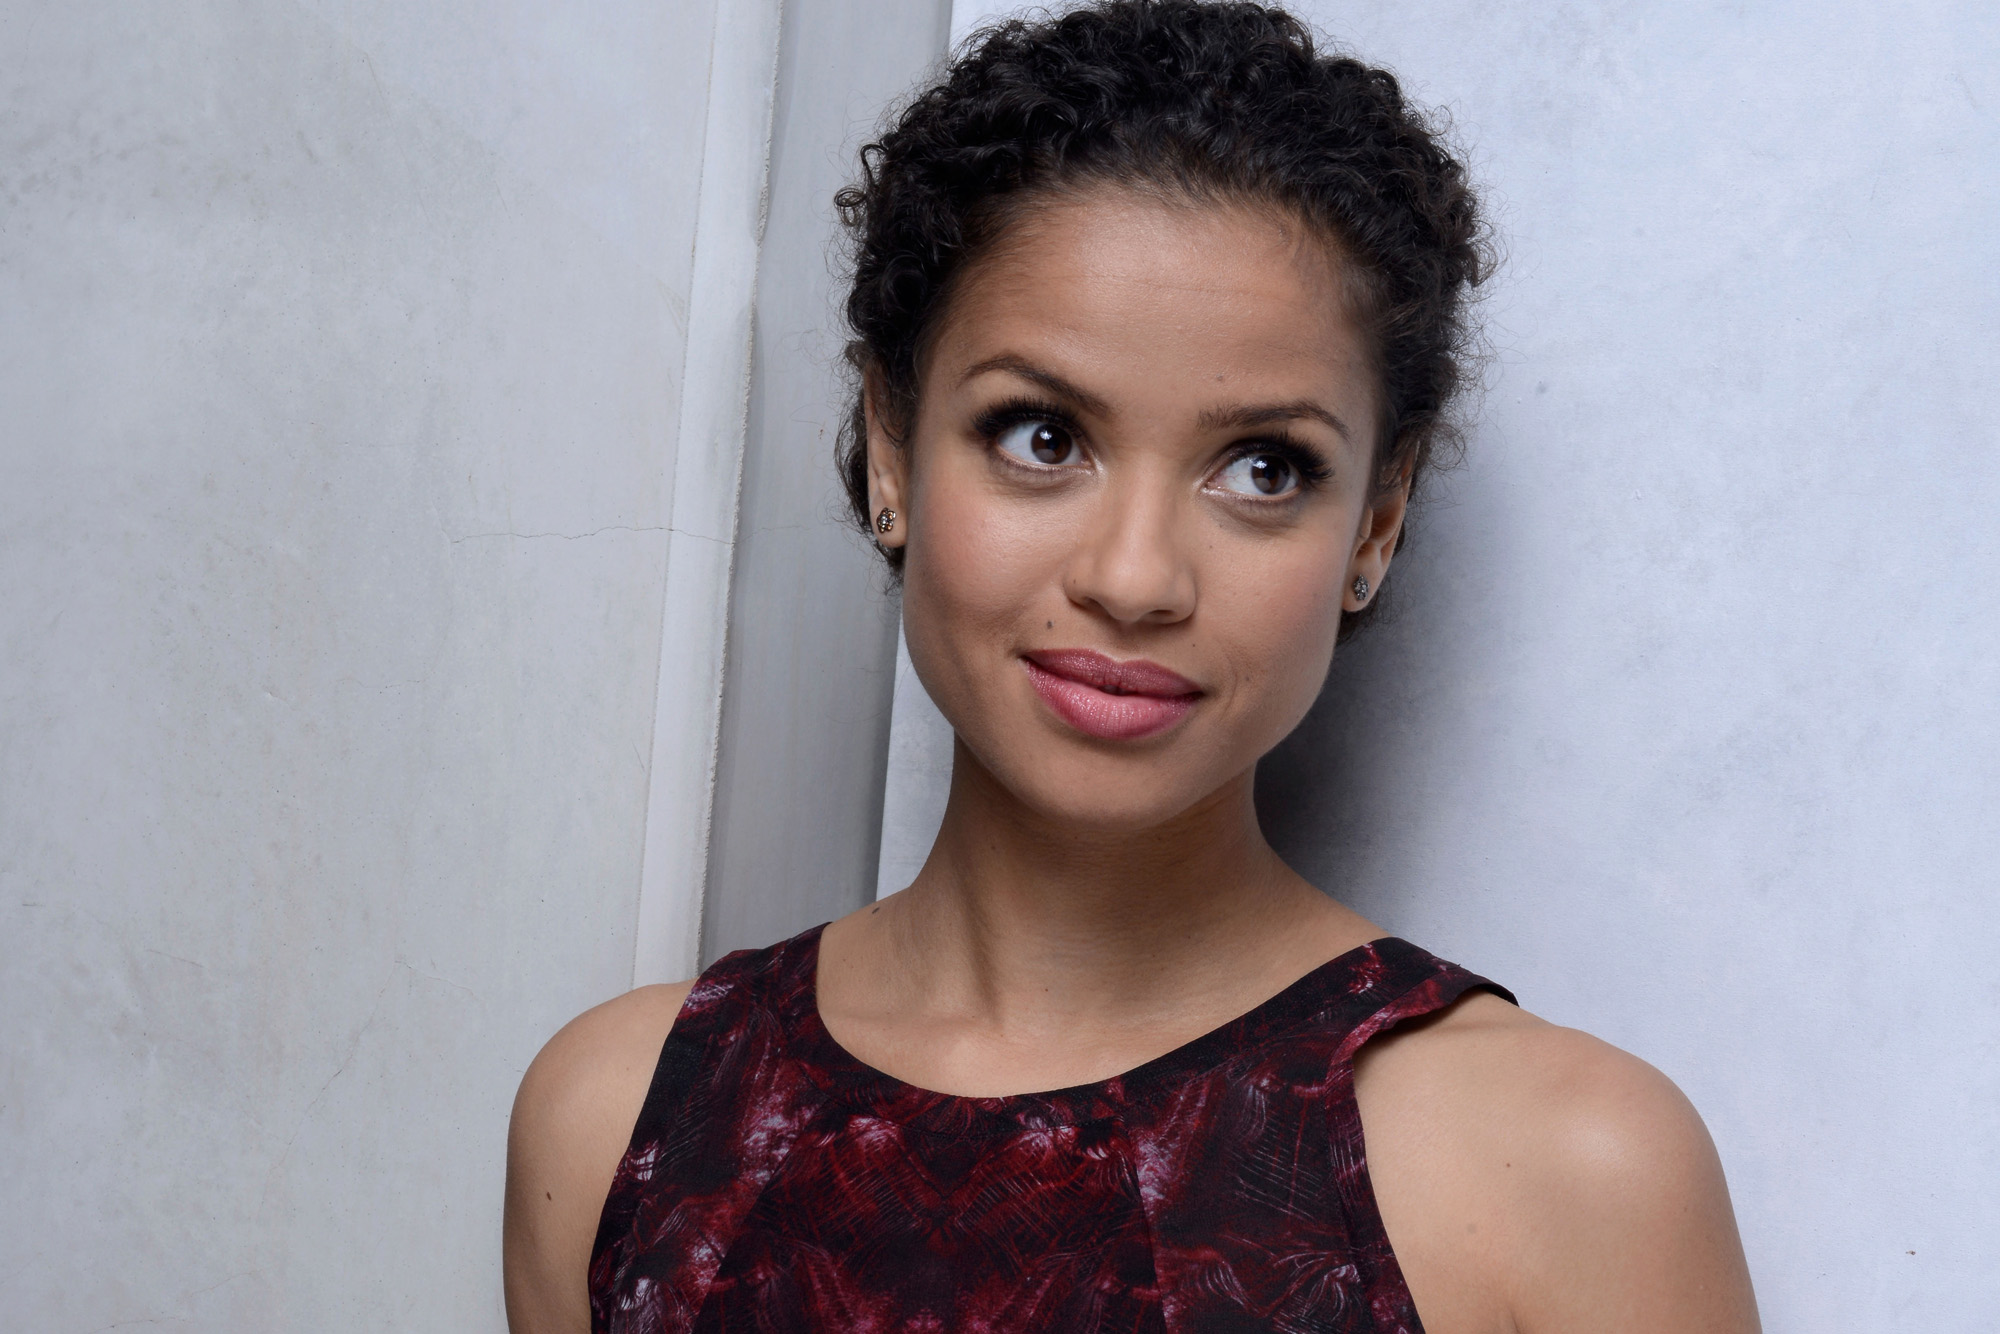 TORONTO, ON - SEPTEMBER 09:  Actress Gugu Mbatha Raw of 'Belle' poses at the Guess Portrait Studio during 2013 Toronto International Film Festival on September 9, 2013 in Toronto, Canada.  (Photo by Jeff Vespa/WireImage)